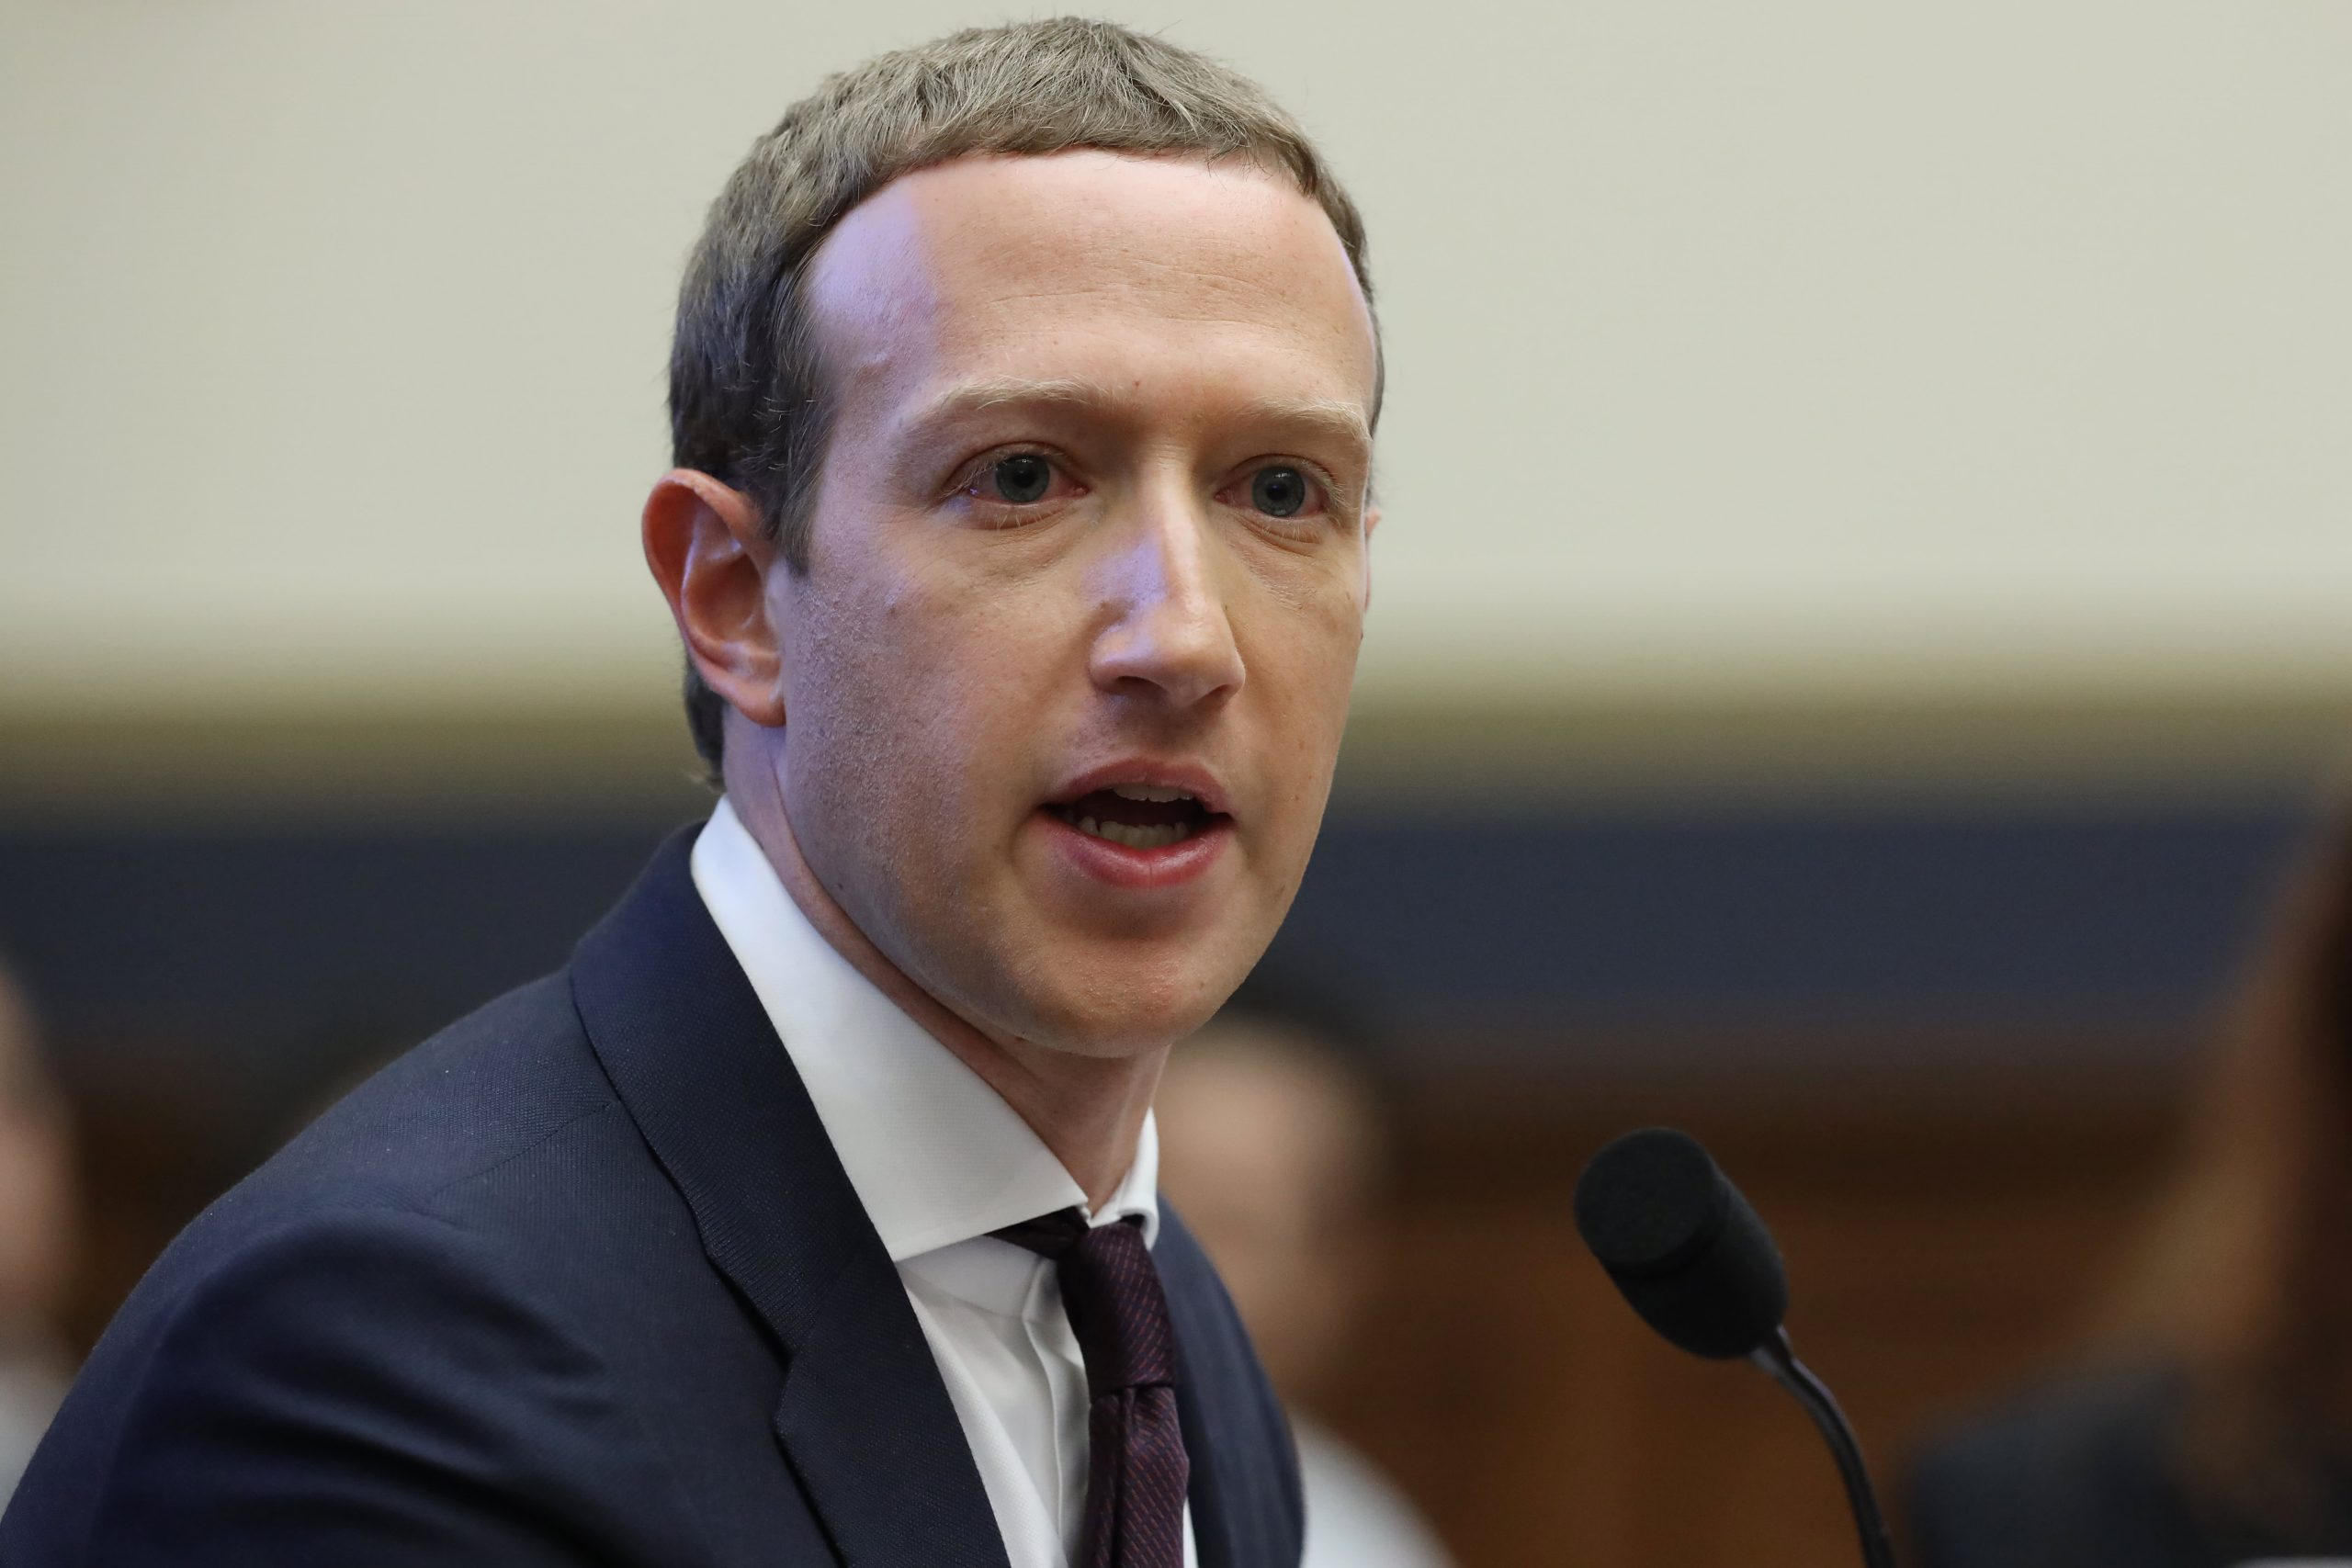 Zuckerberg: Facebook may actually be in a 'stronger position' after Apple's iOS 14 privacy changes